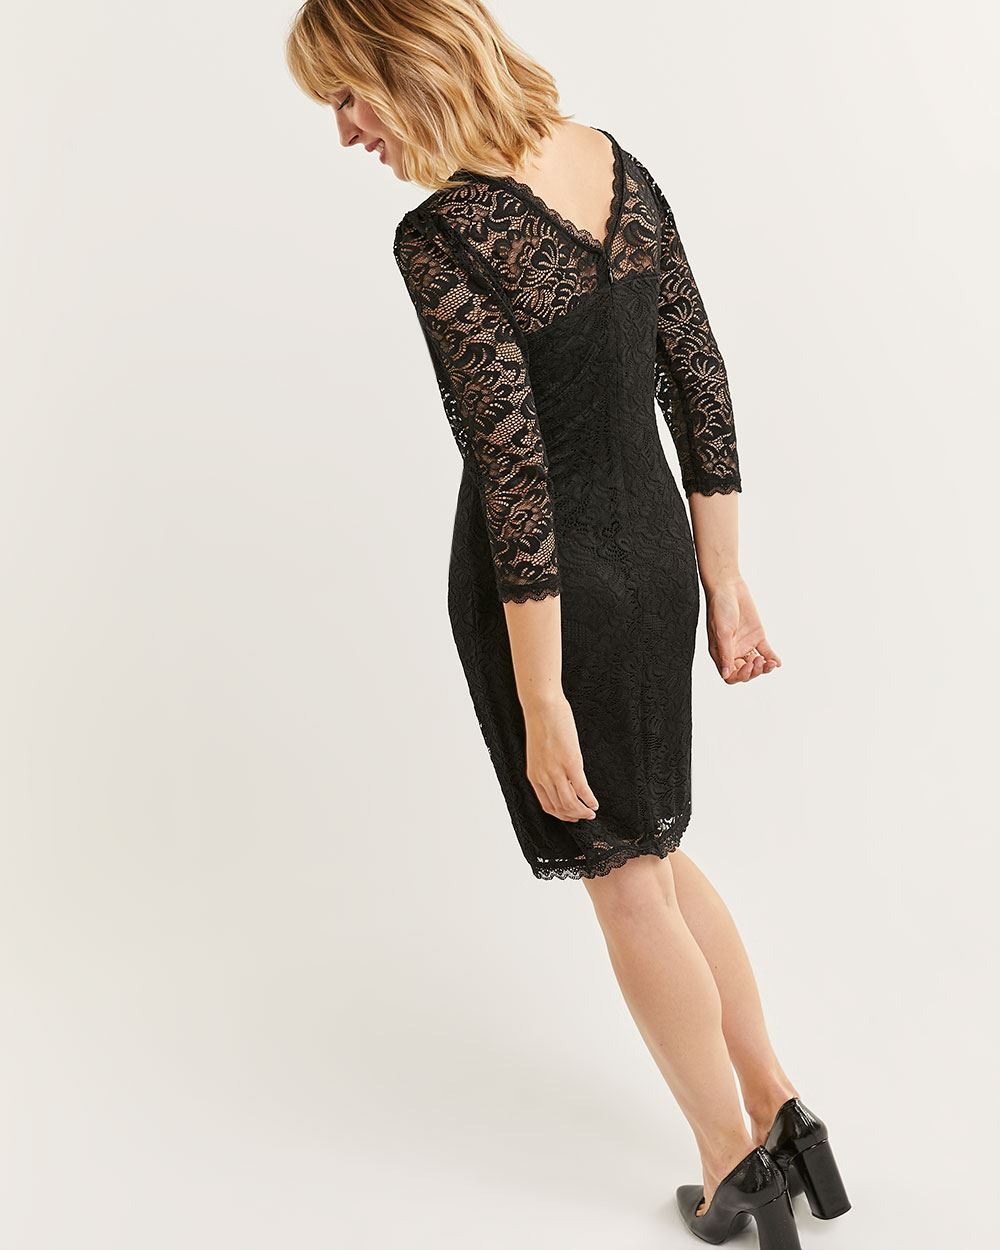 3/4 Sleeve Lace Bodycon Dress